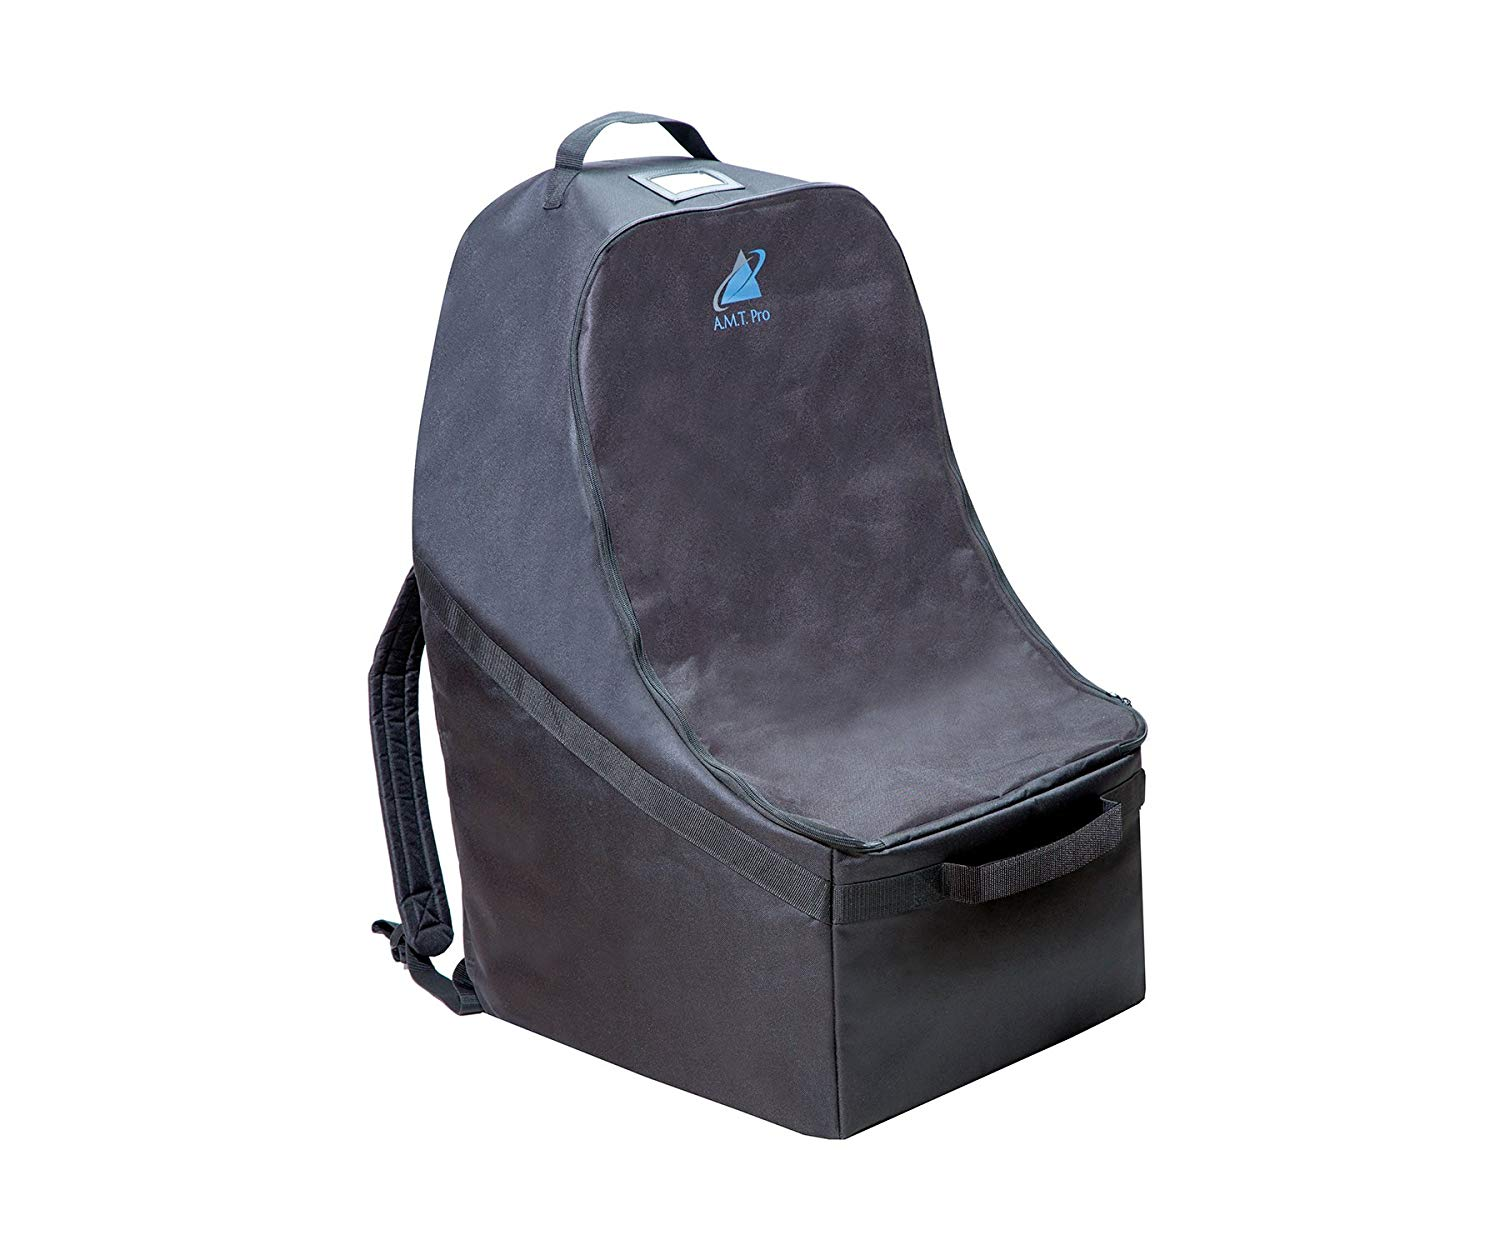 Premium Car Seat Travel Bag by A.M.T Pro